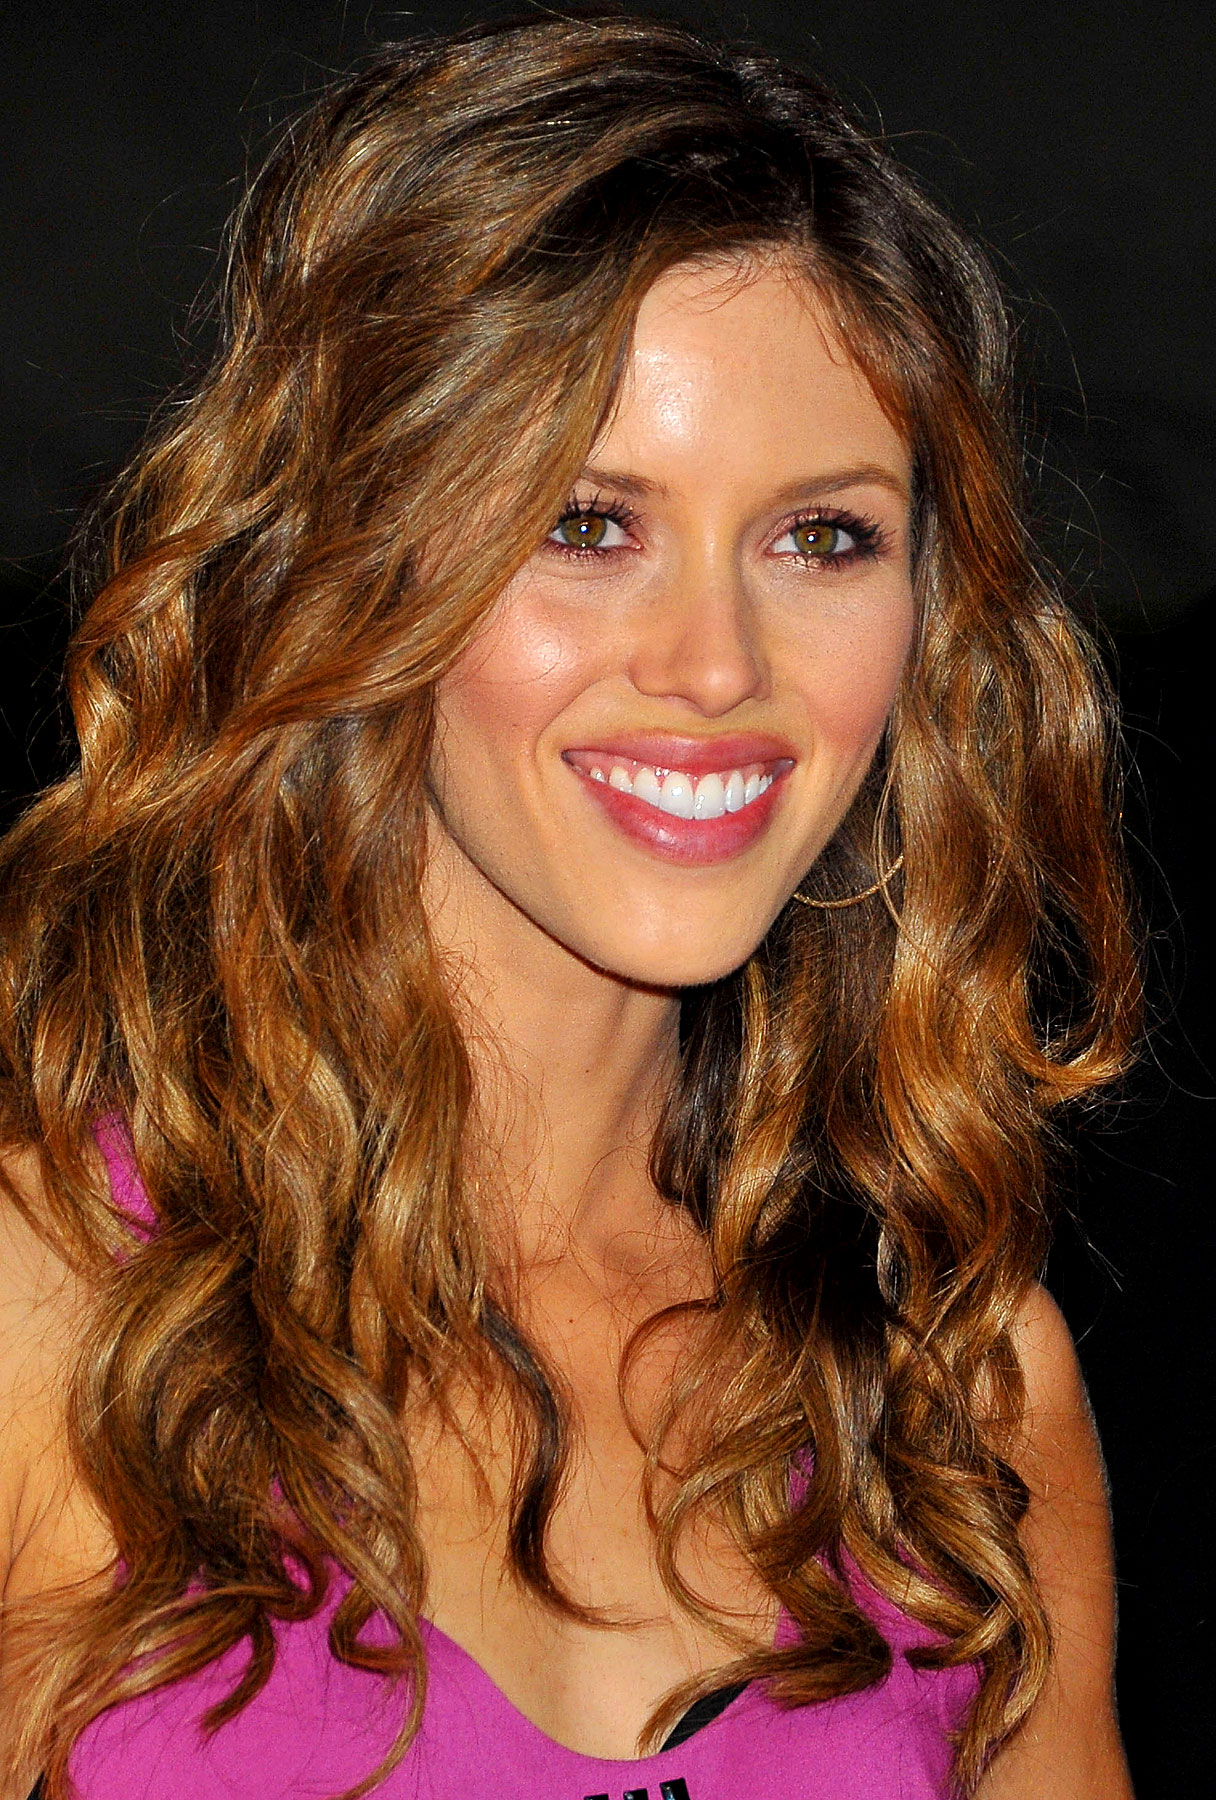 Vampire Diaries' Kayla Ewell Opens Up About Flashing